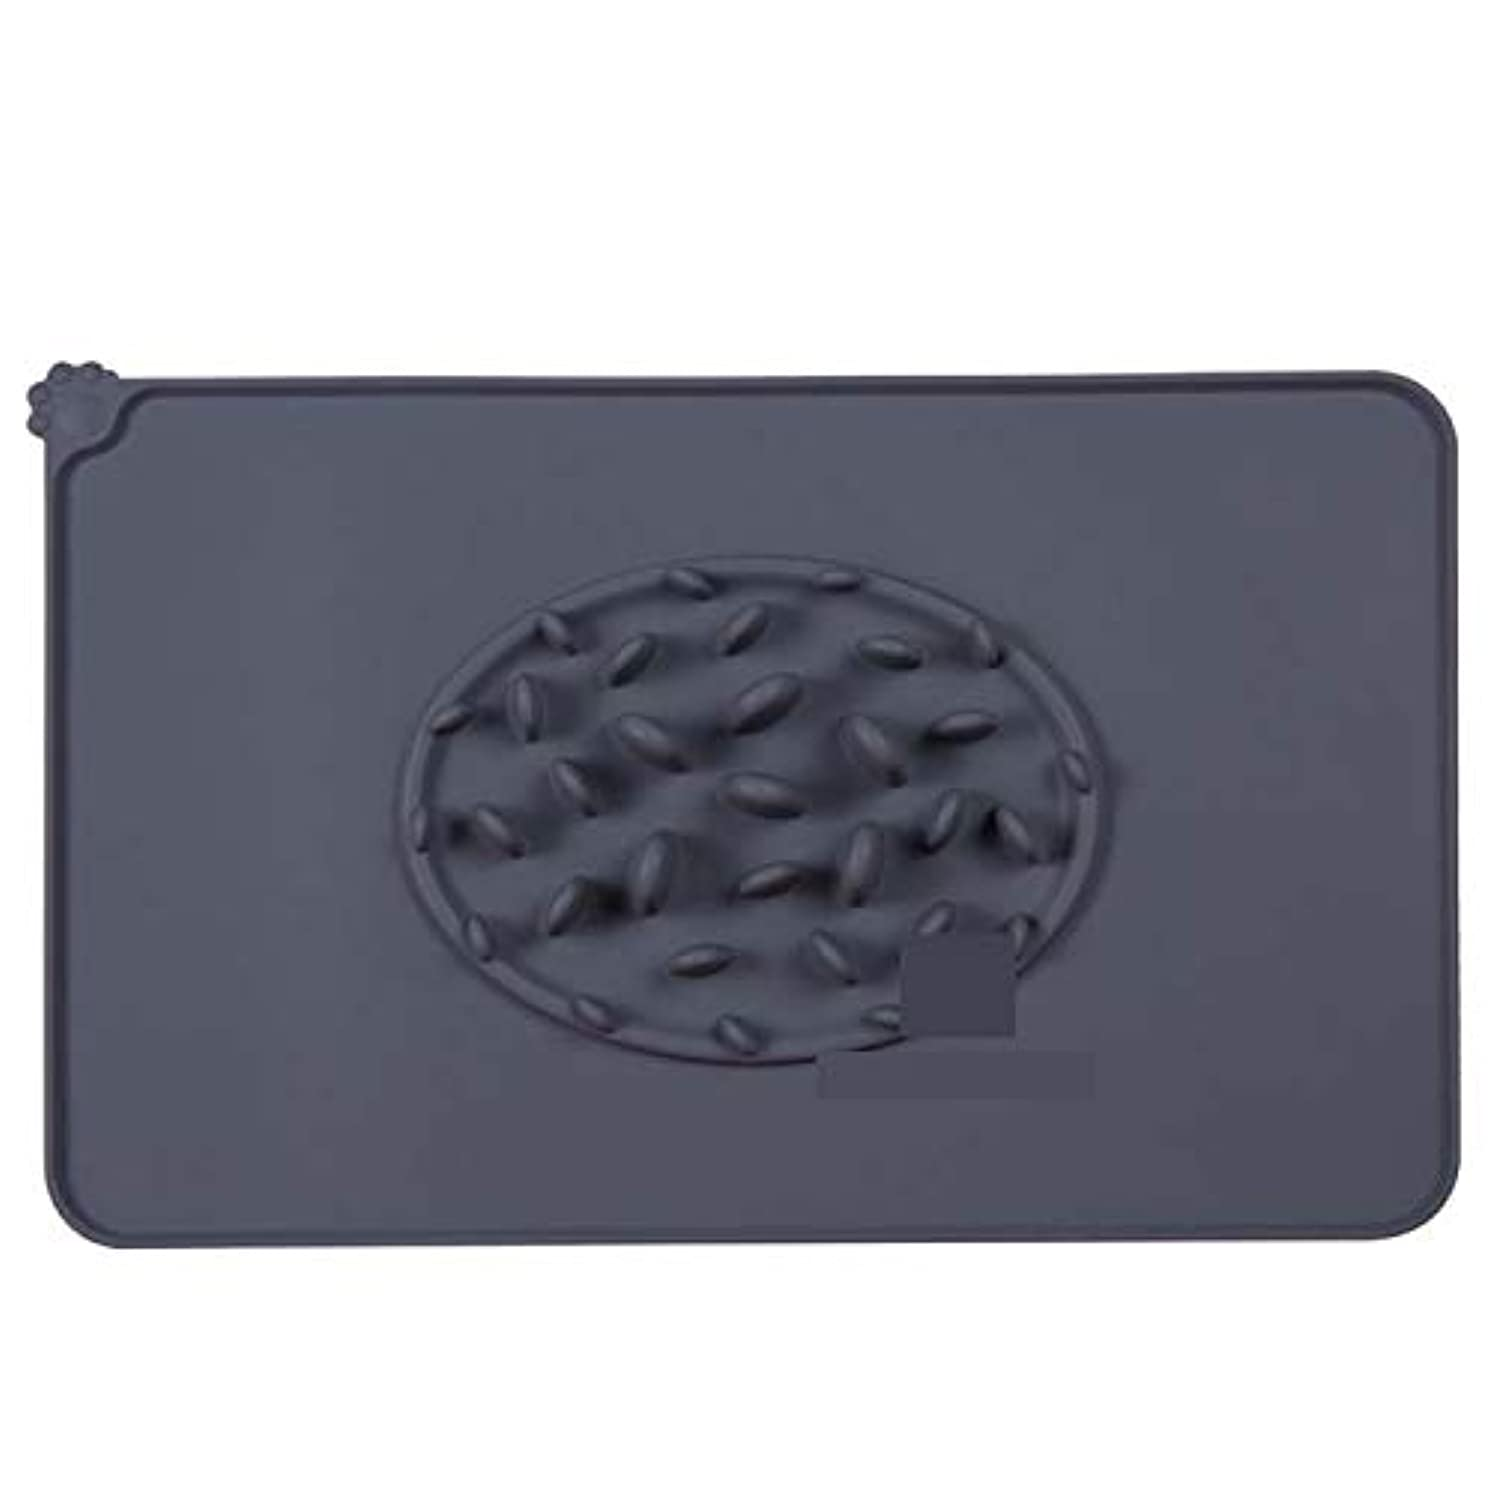 SUYPITE Silicone Dog Food Mat Slow Eating Pet Feeding Mat Placemat for Food and Water,Waterproof Non-Slip Fo (グレー)